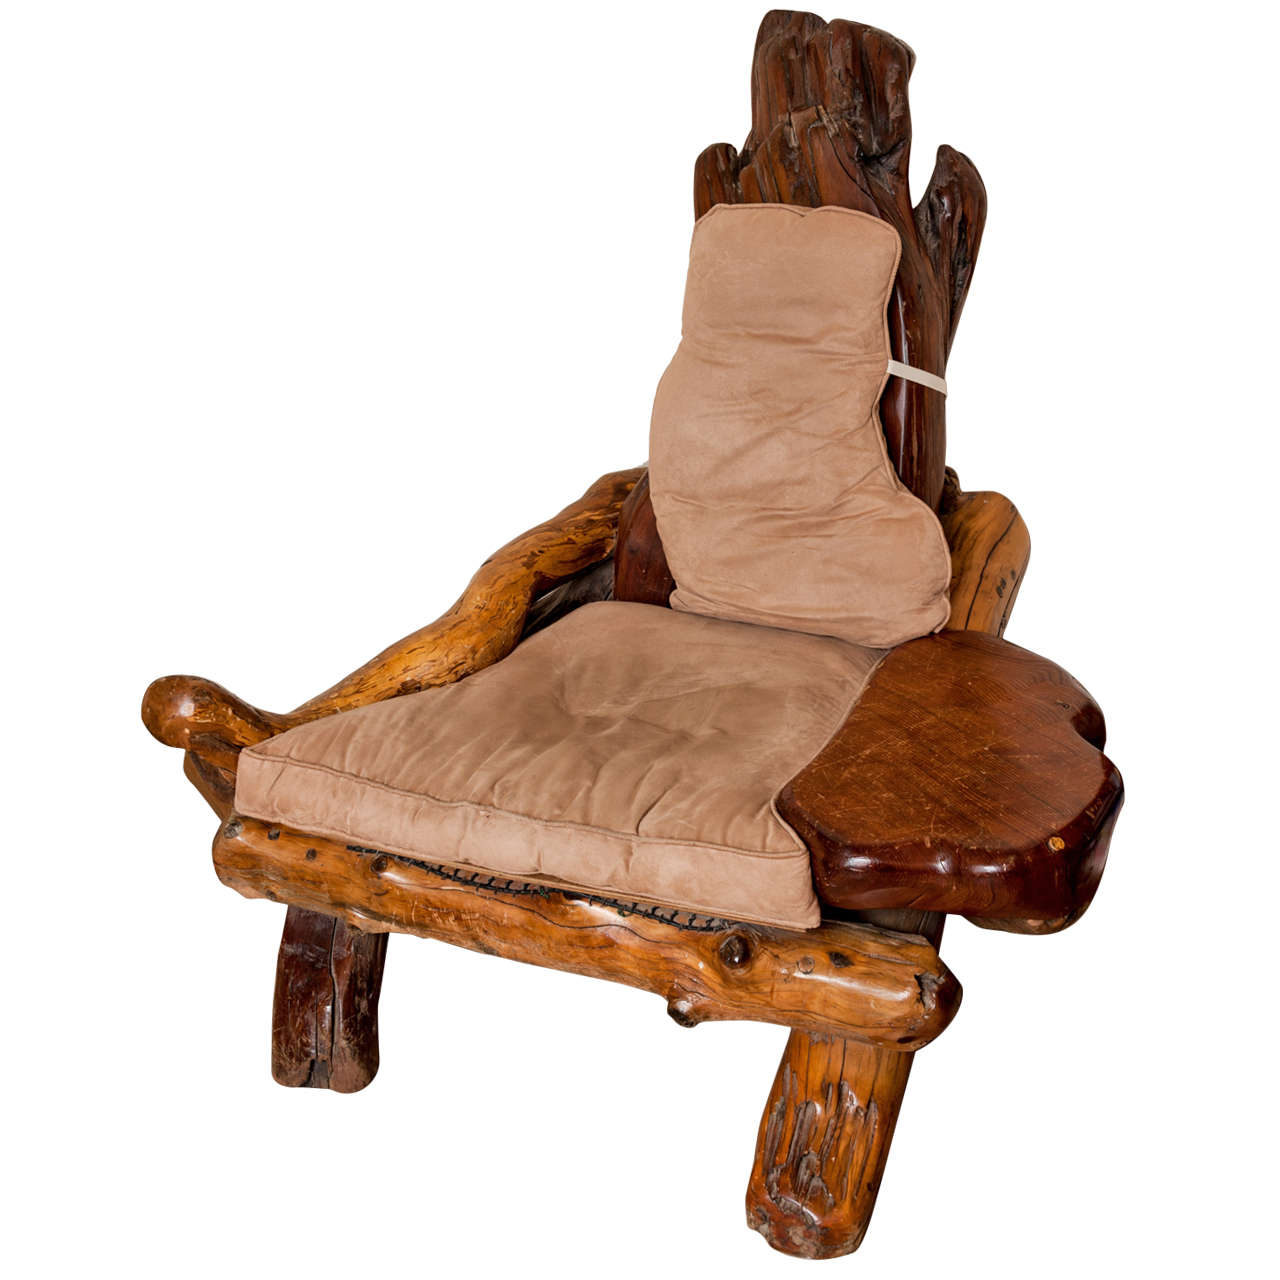 Lounge chair in Redwood USA circa 1970 For Sale at 1stdibs